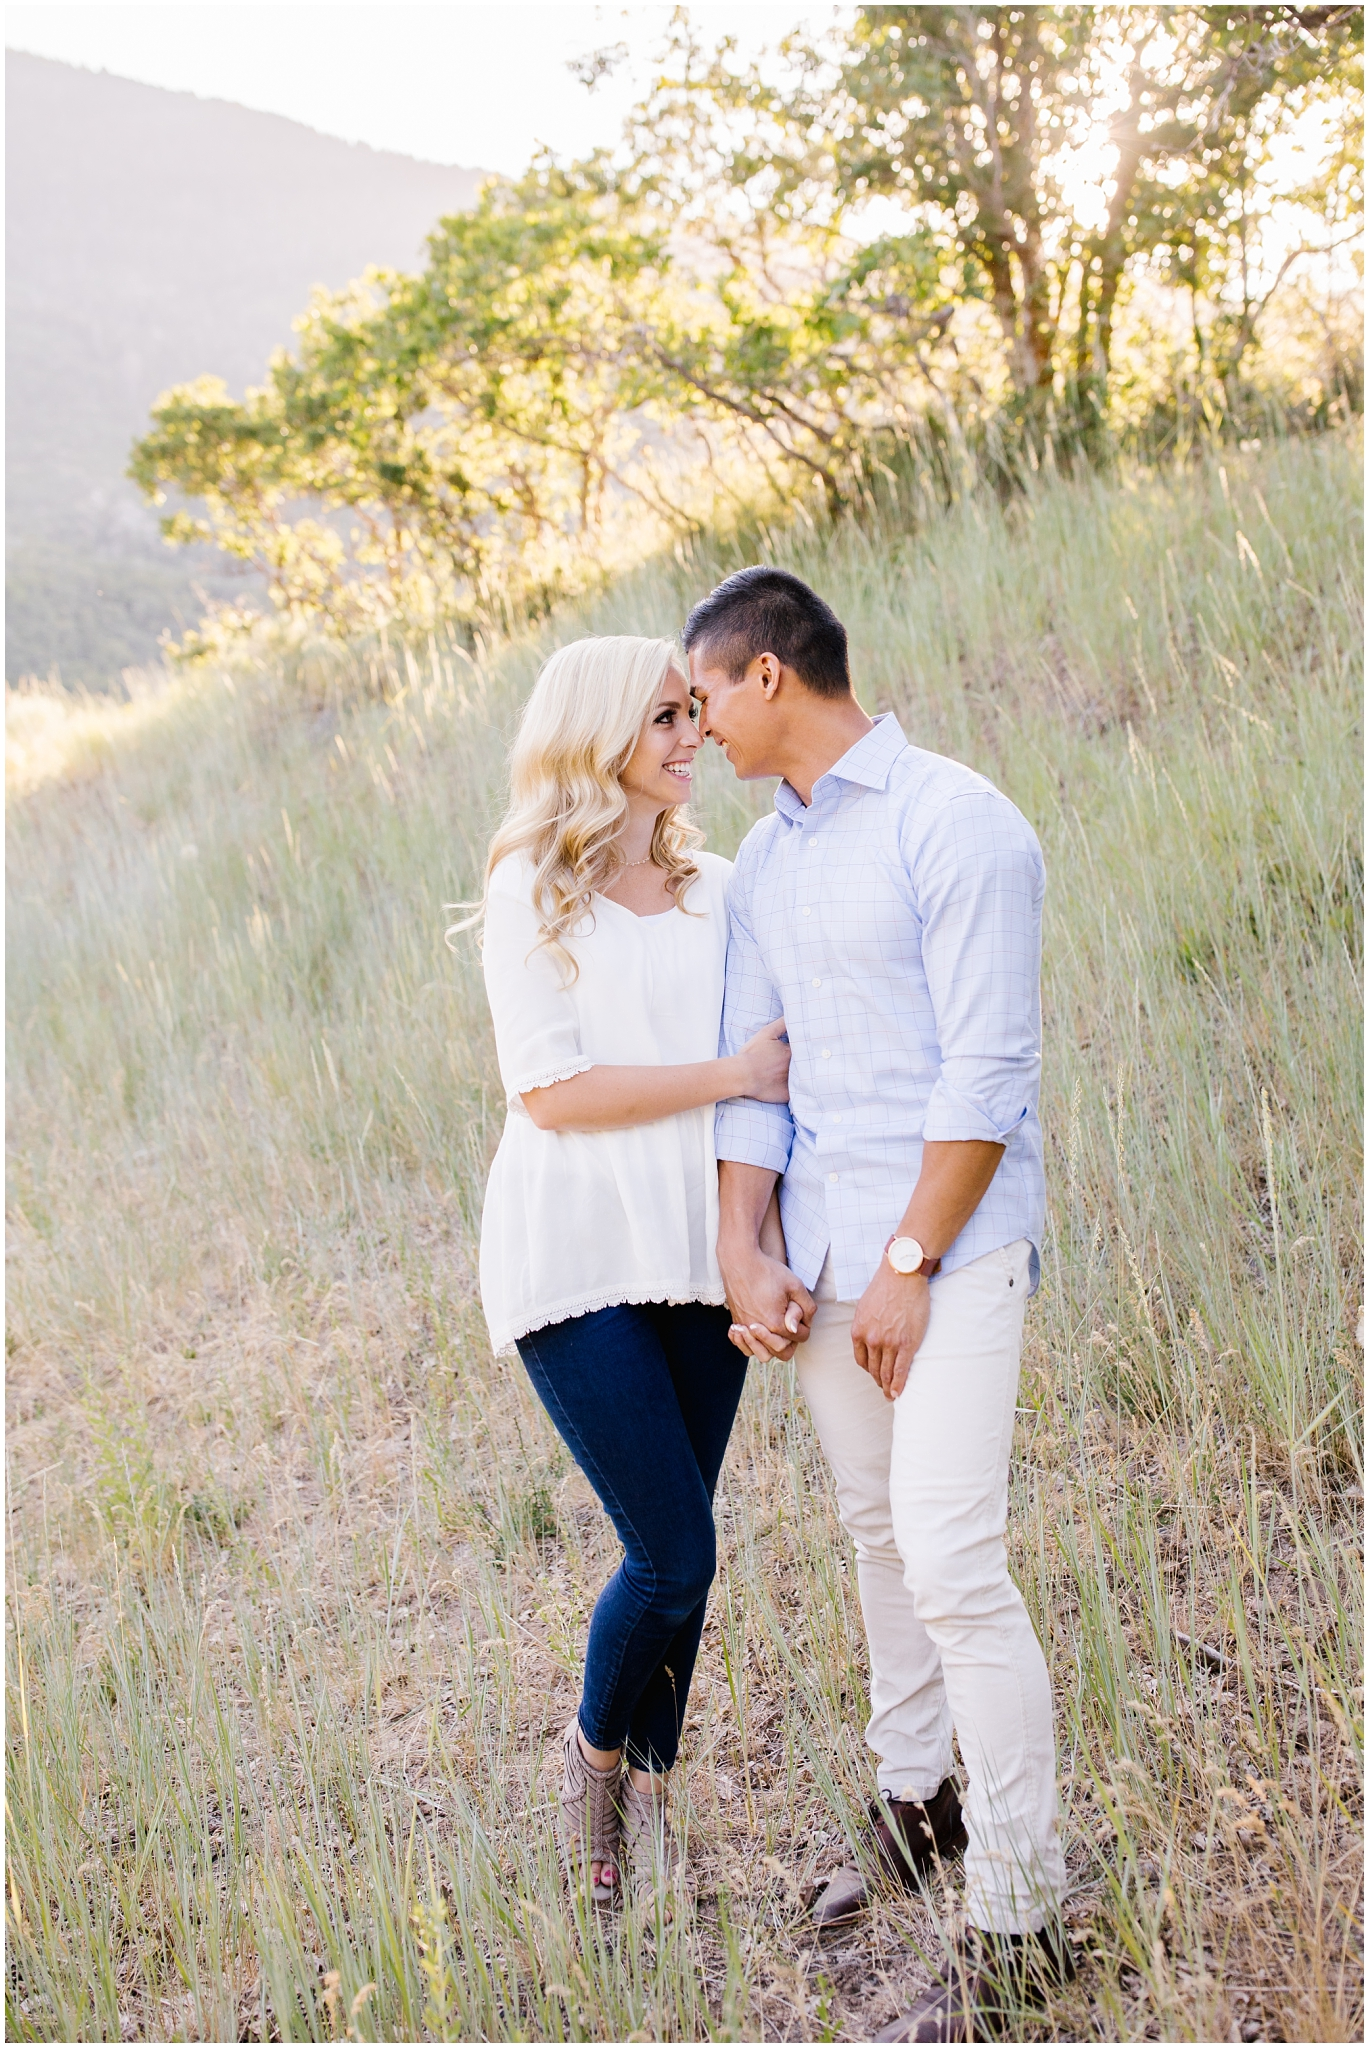 HCengagements-21_Lizzie-B-Imagery-Utah-Wedding-Photographer-Park-City-Salt-Lake-City-Payson-Canyon-Engagement-Session.jpg